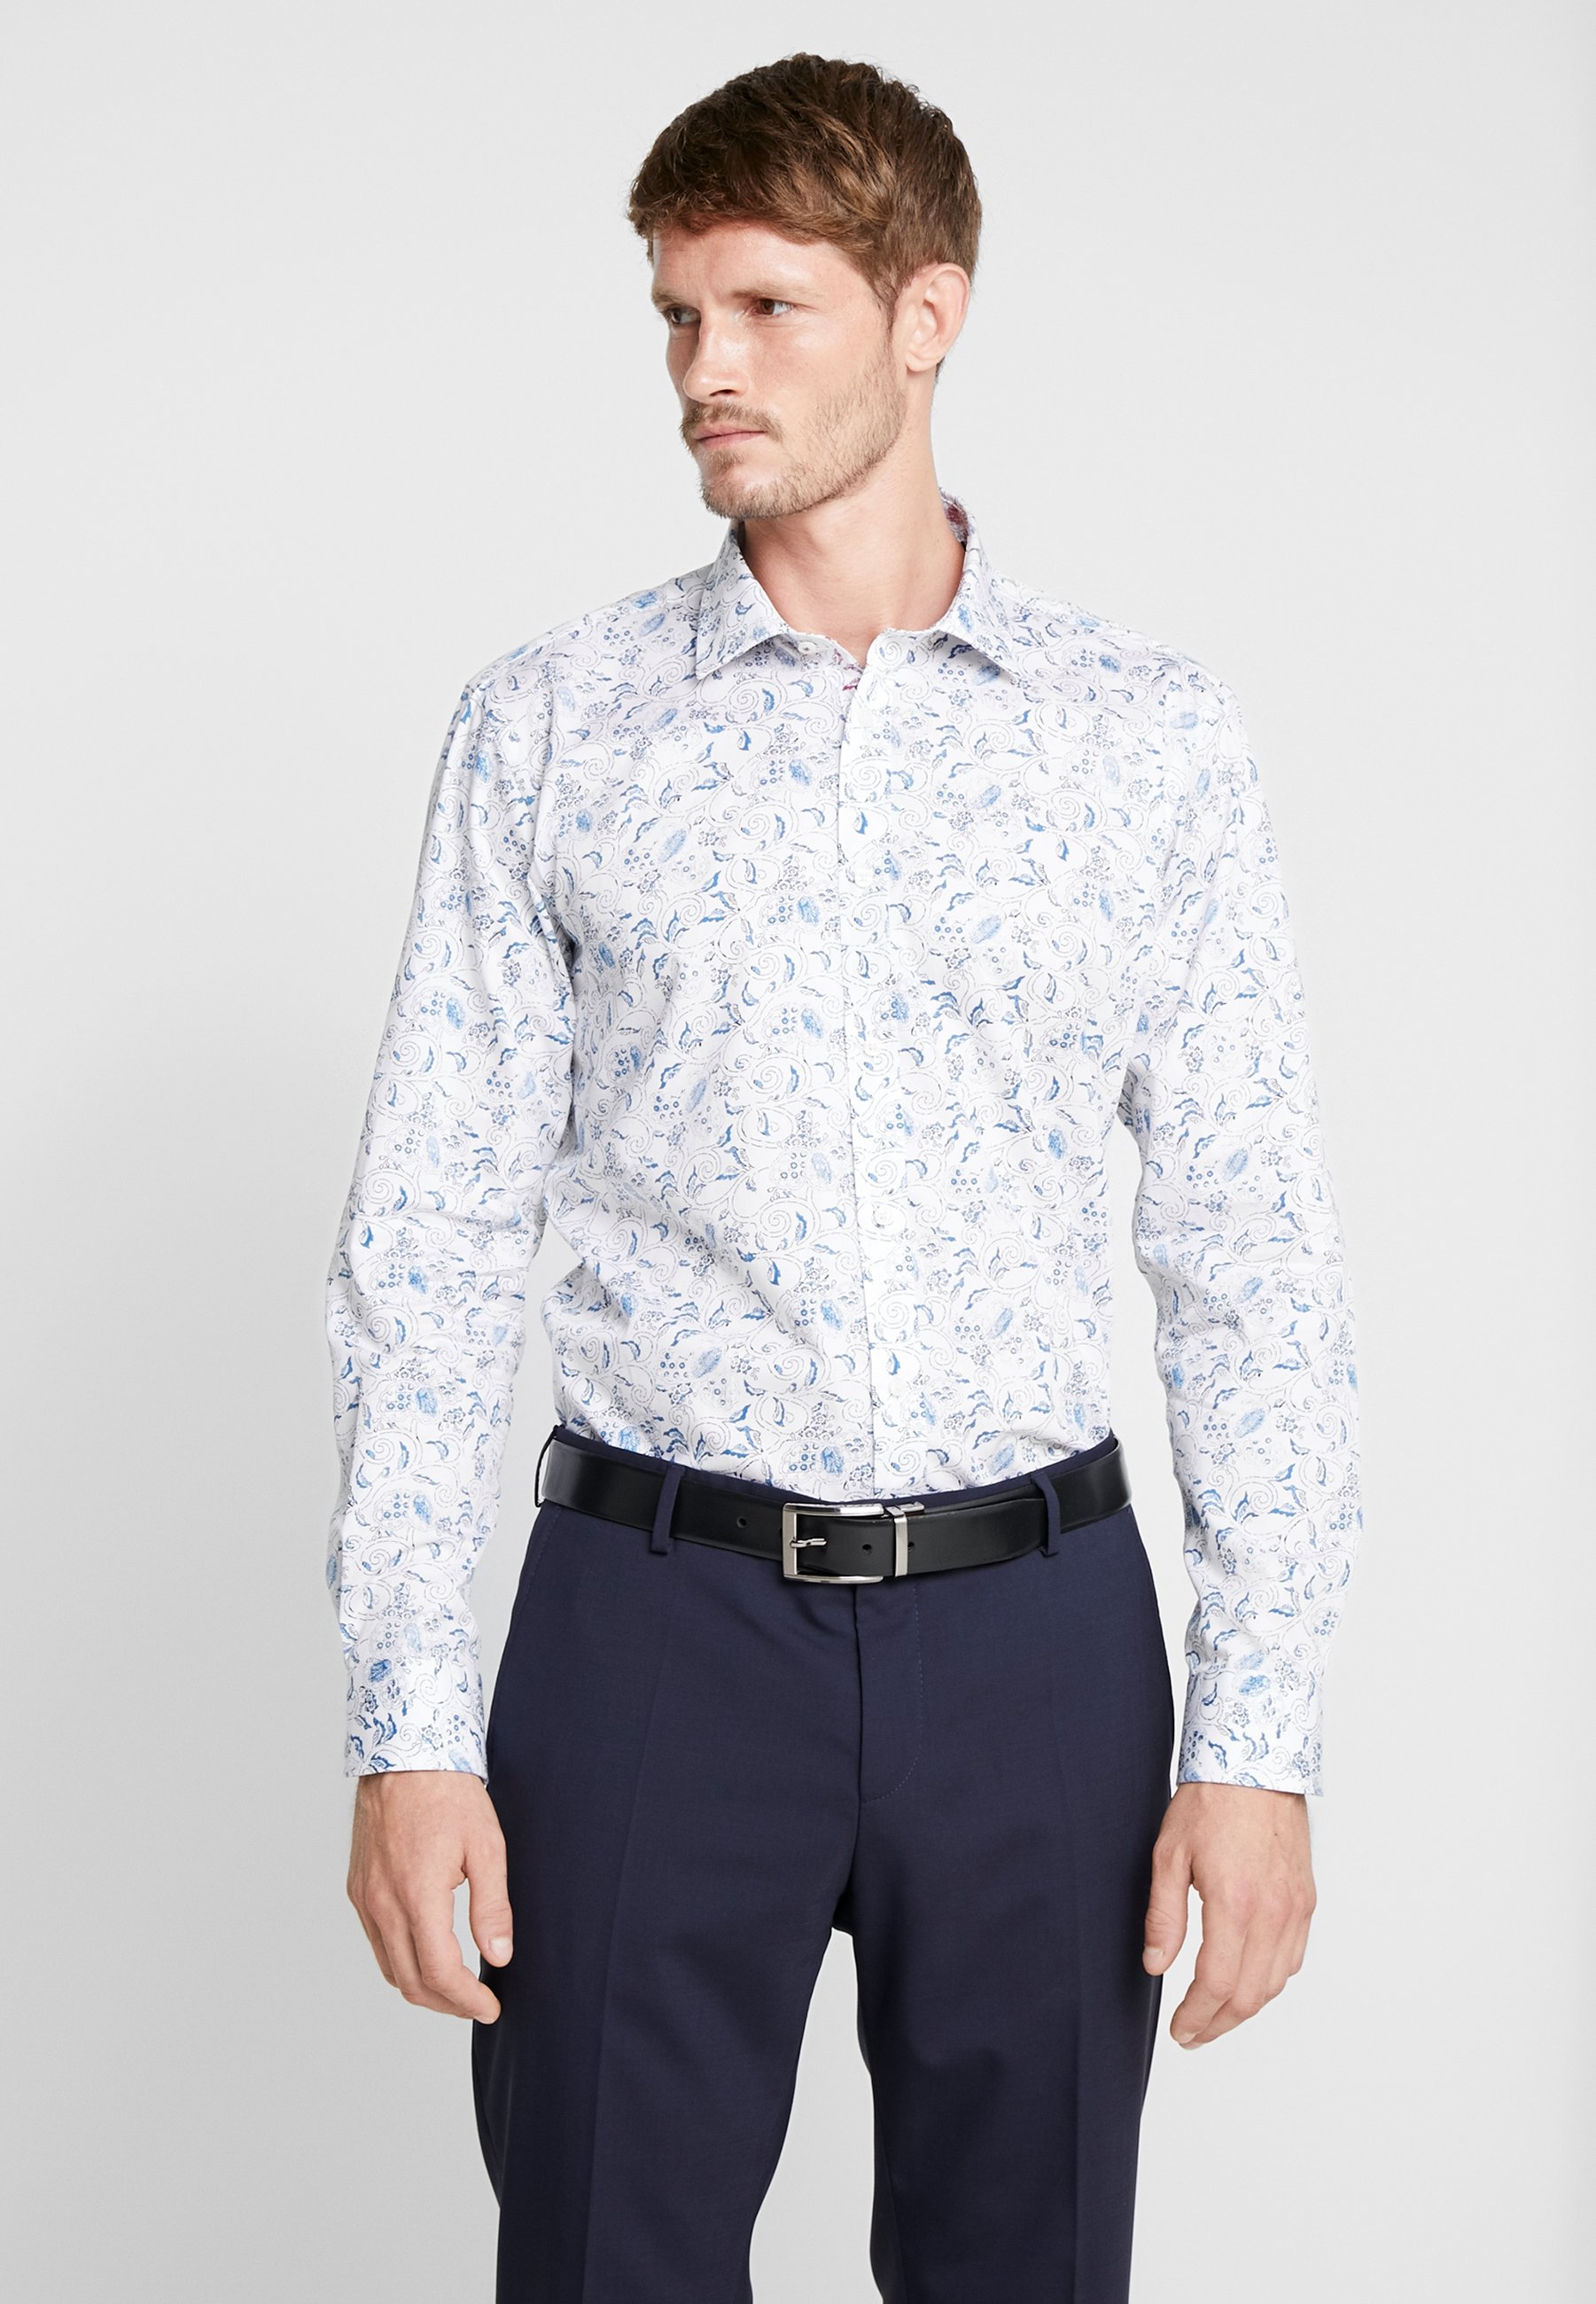 Baker Ted Baker Blue Ted CrownCamicia CrownCamicia Blue CrownCamicia Ted Ted Baker Blue CxtQdhrs